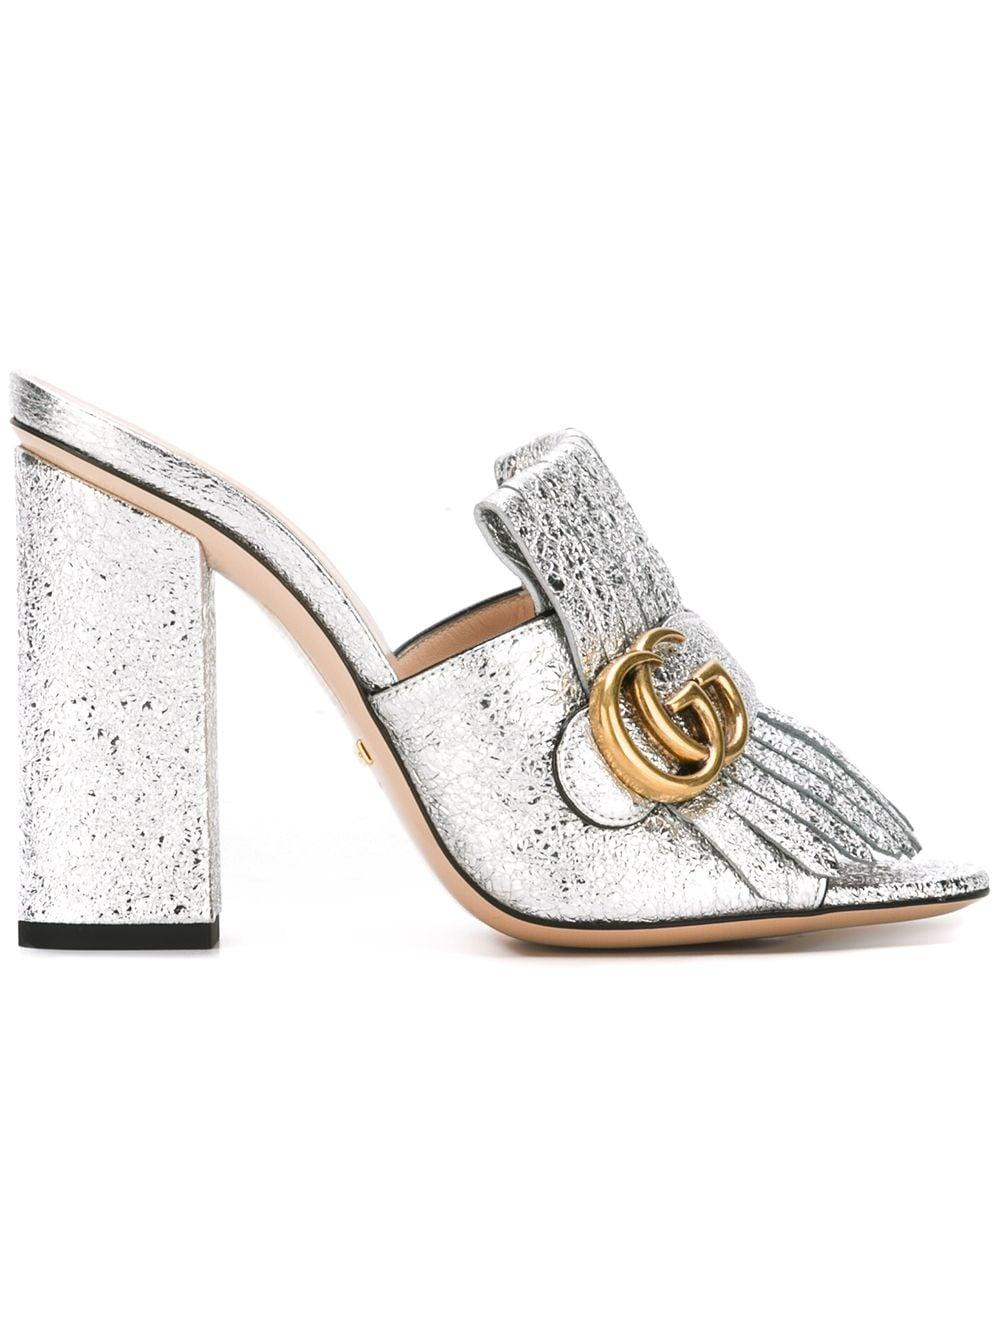 Gucci Leather Marmont Mules in Silver